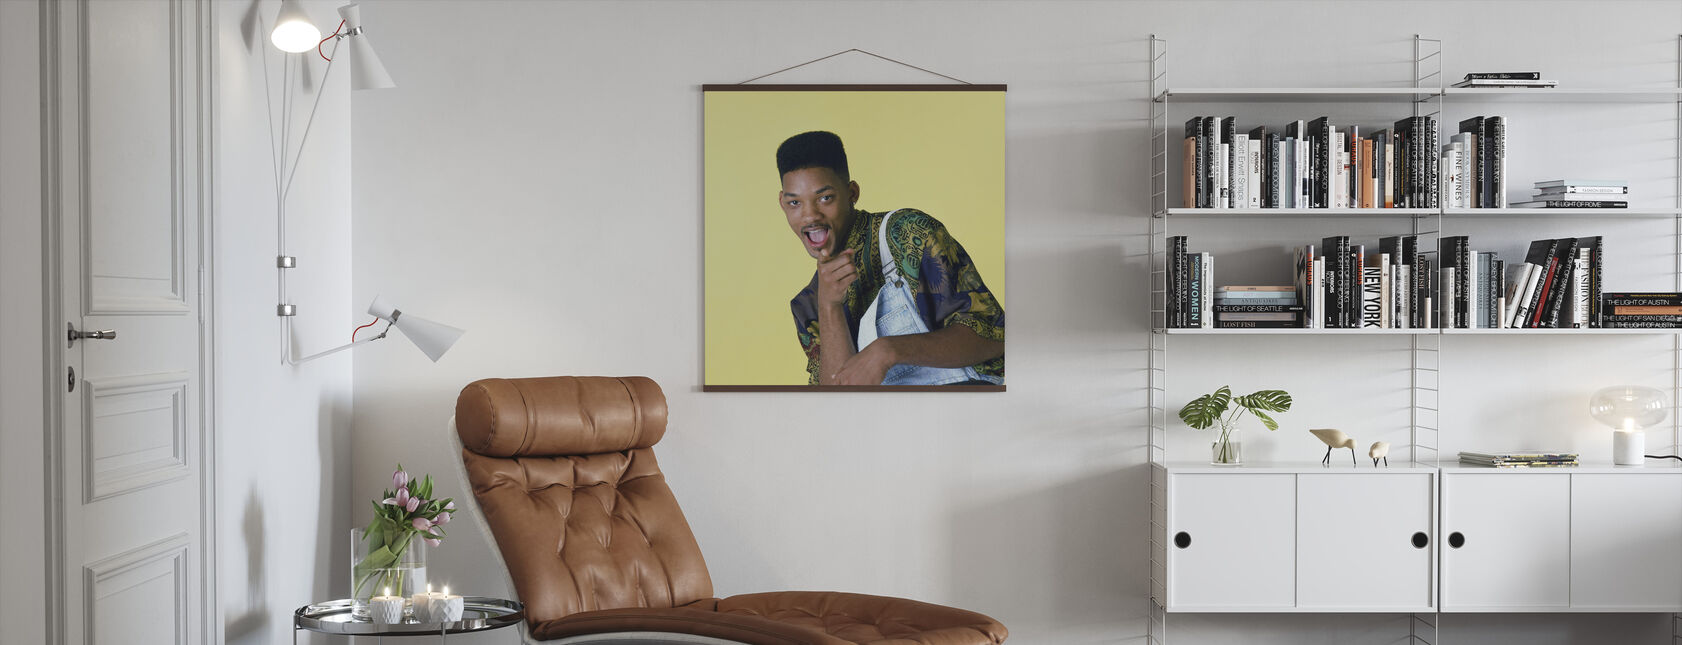 Will Smith in the Fresh Prince of Belair - Poster - Living Room